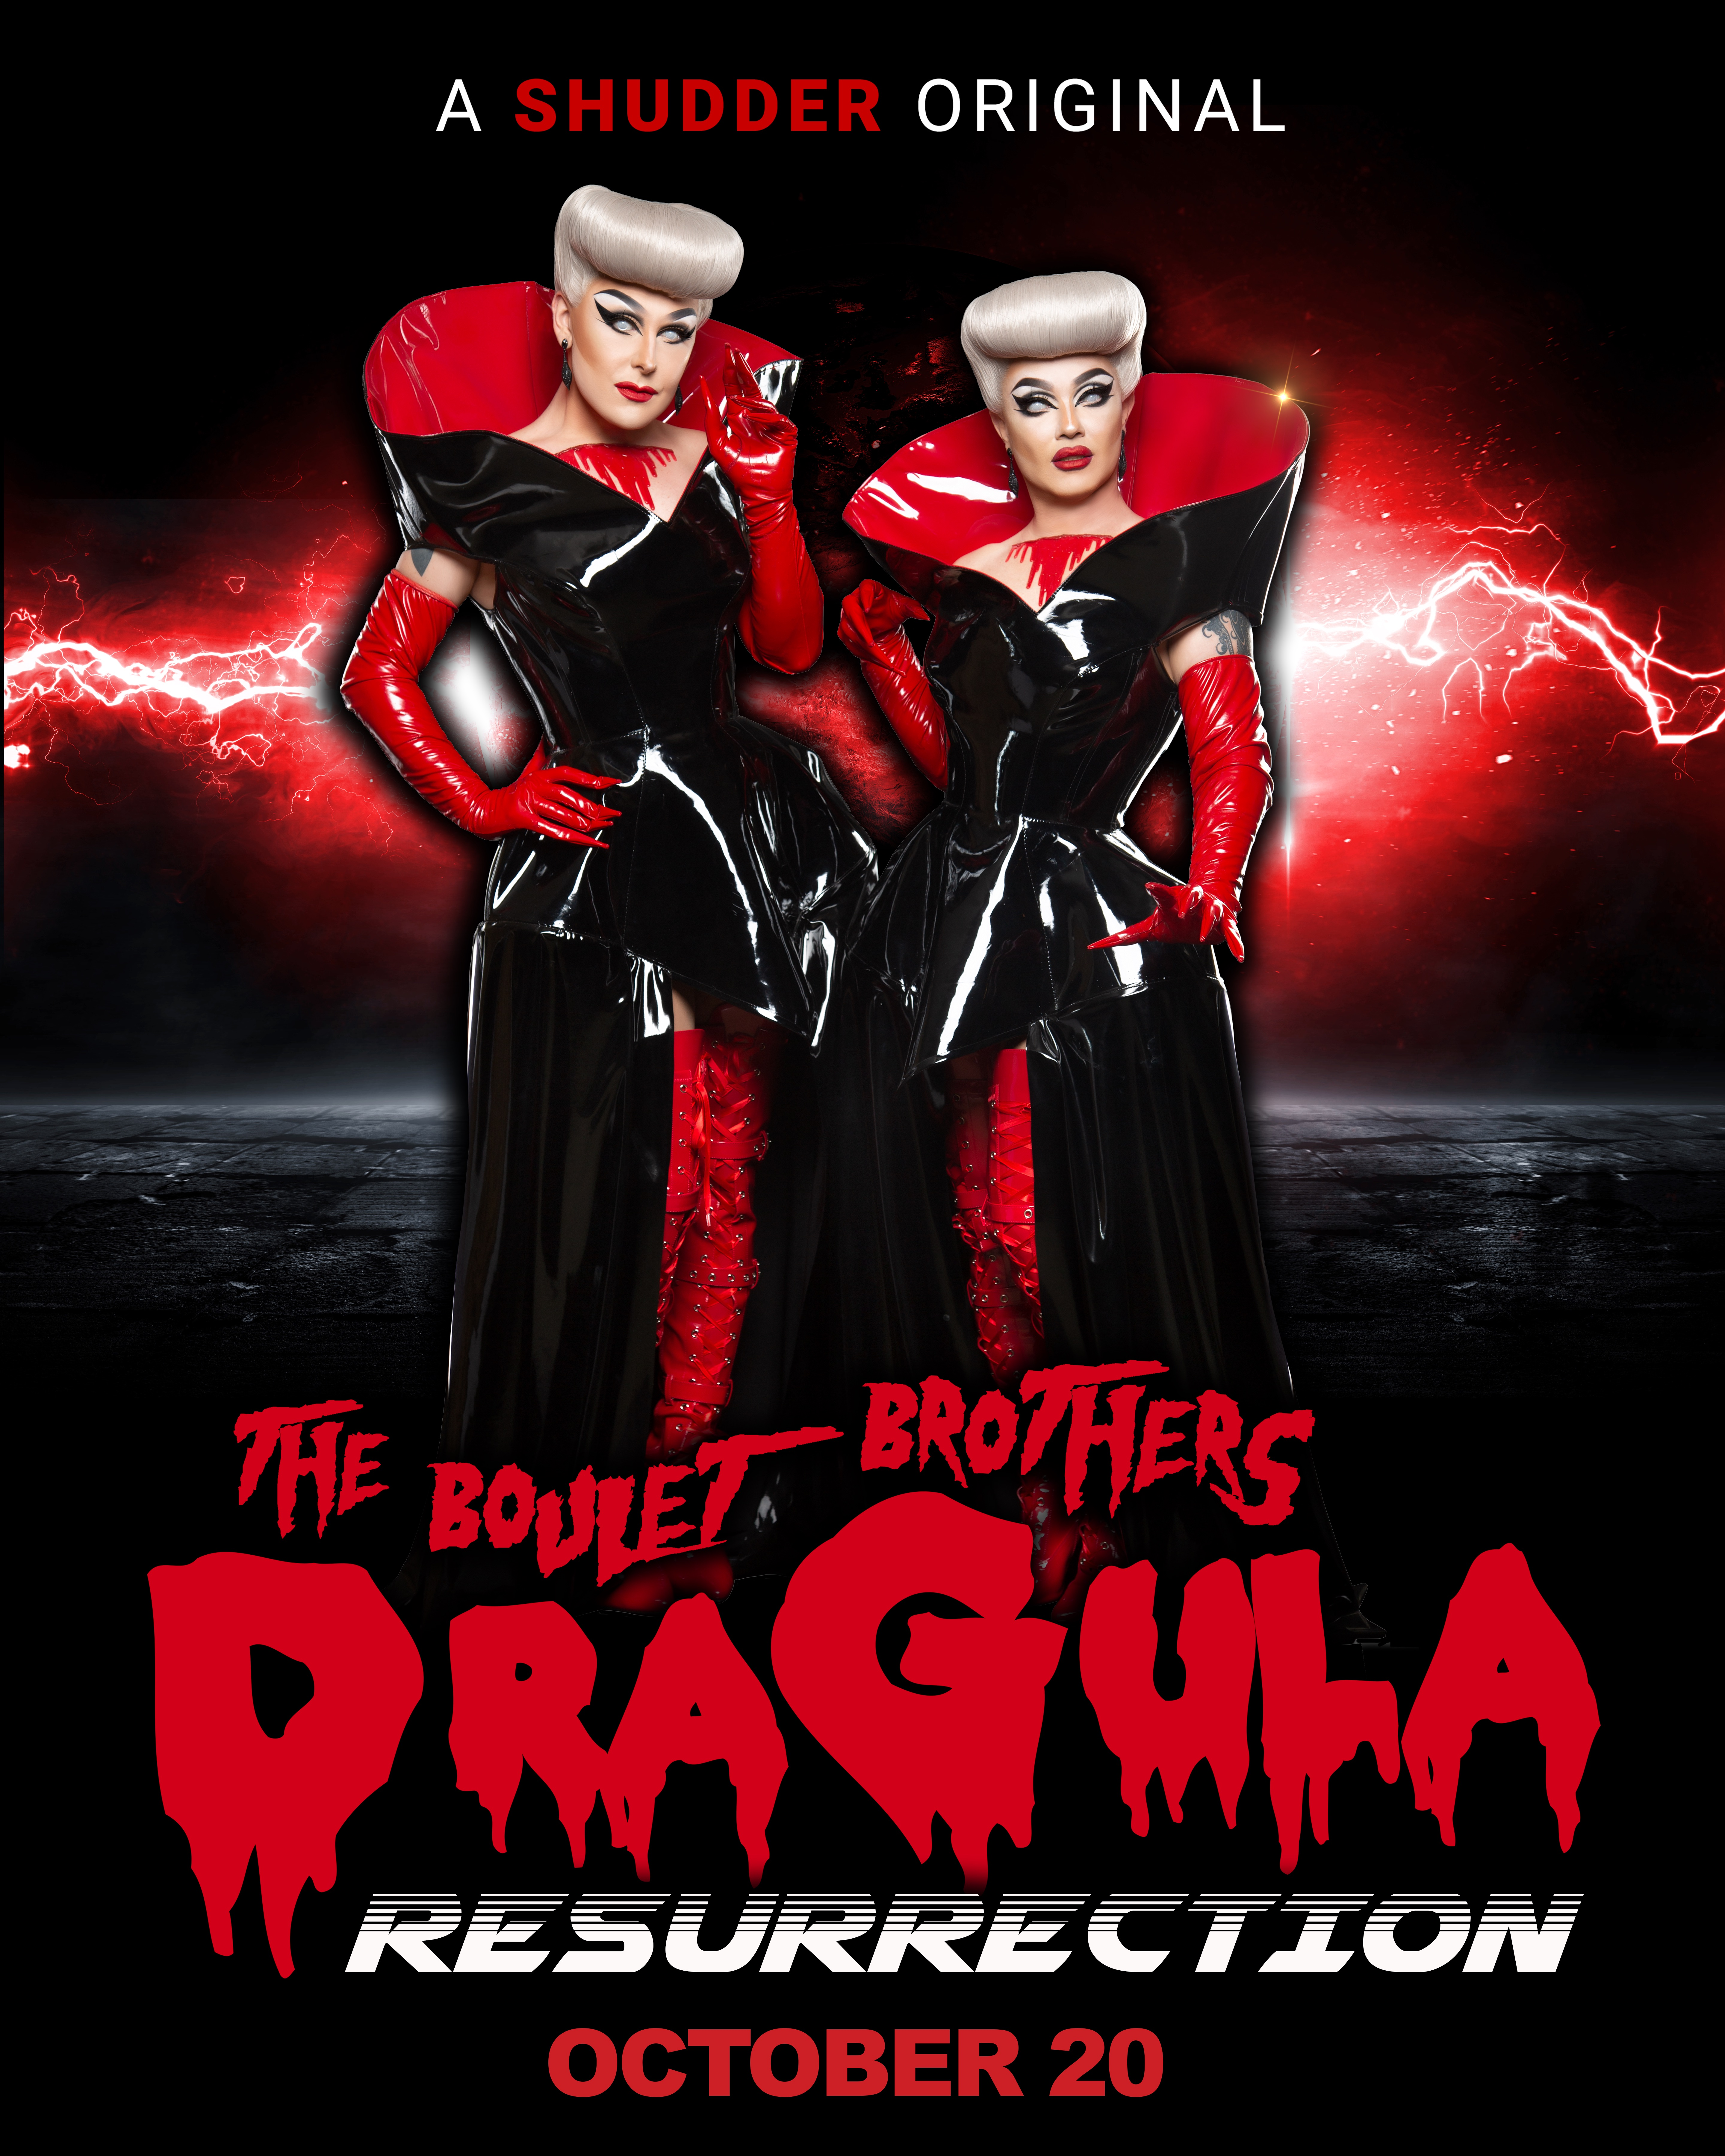 The Boulet Brothers' Dragula: Resurrection hd on soap2day